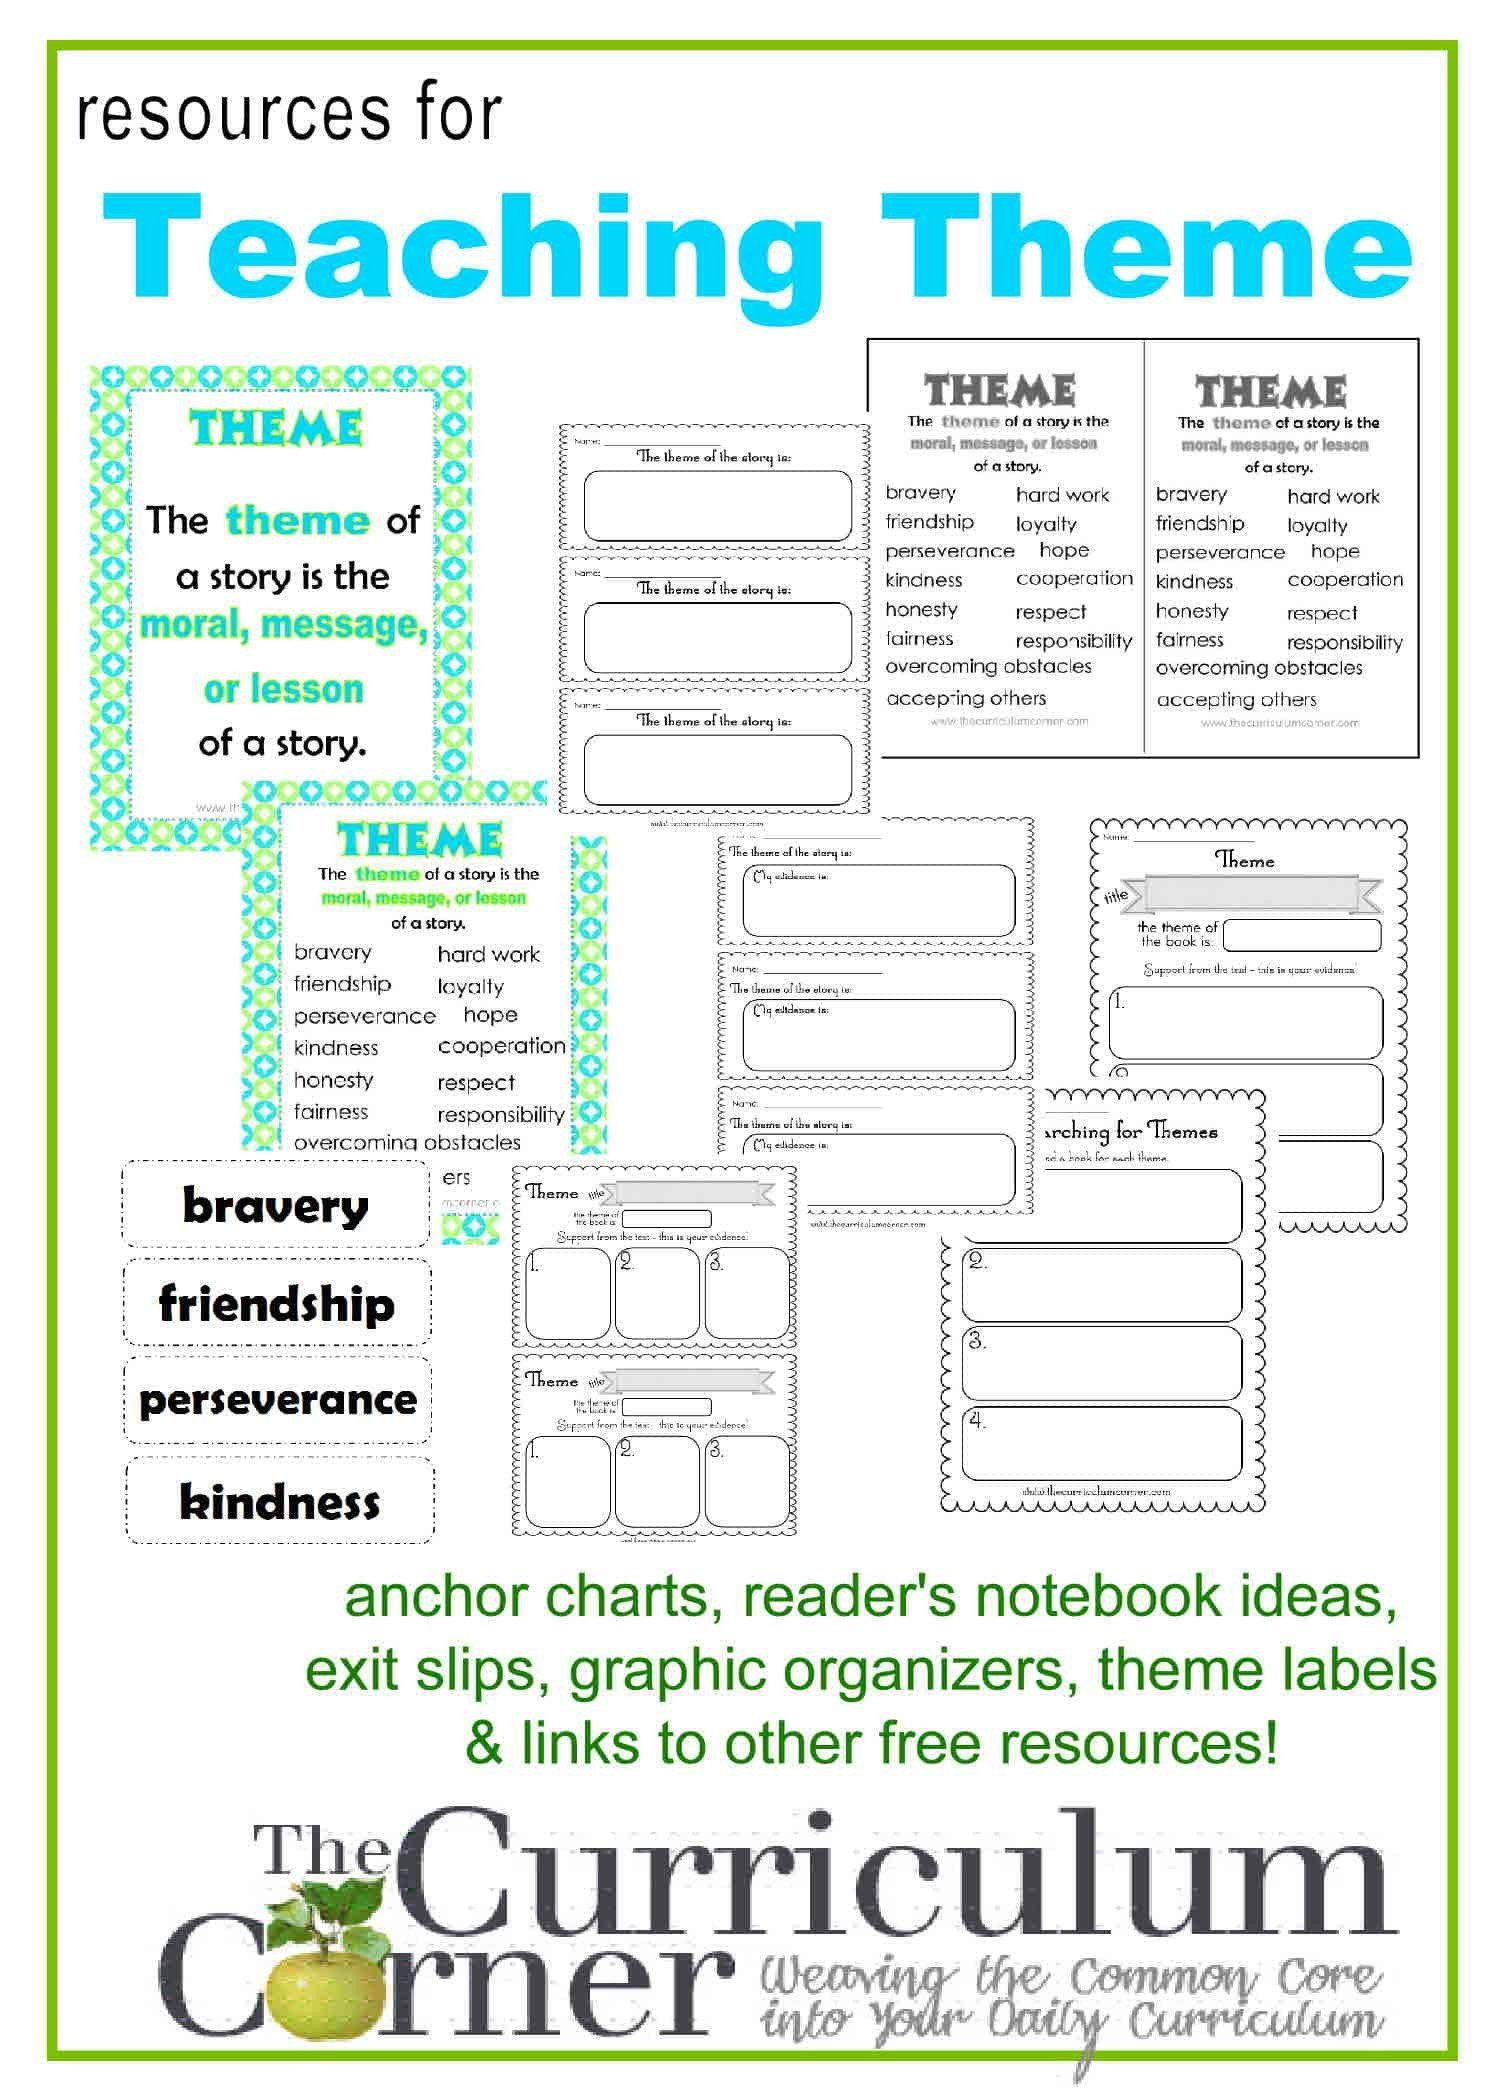 Theme Worksheet 4th Grade Teaching Theme In Reading The